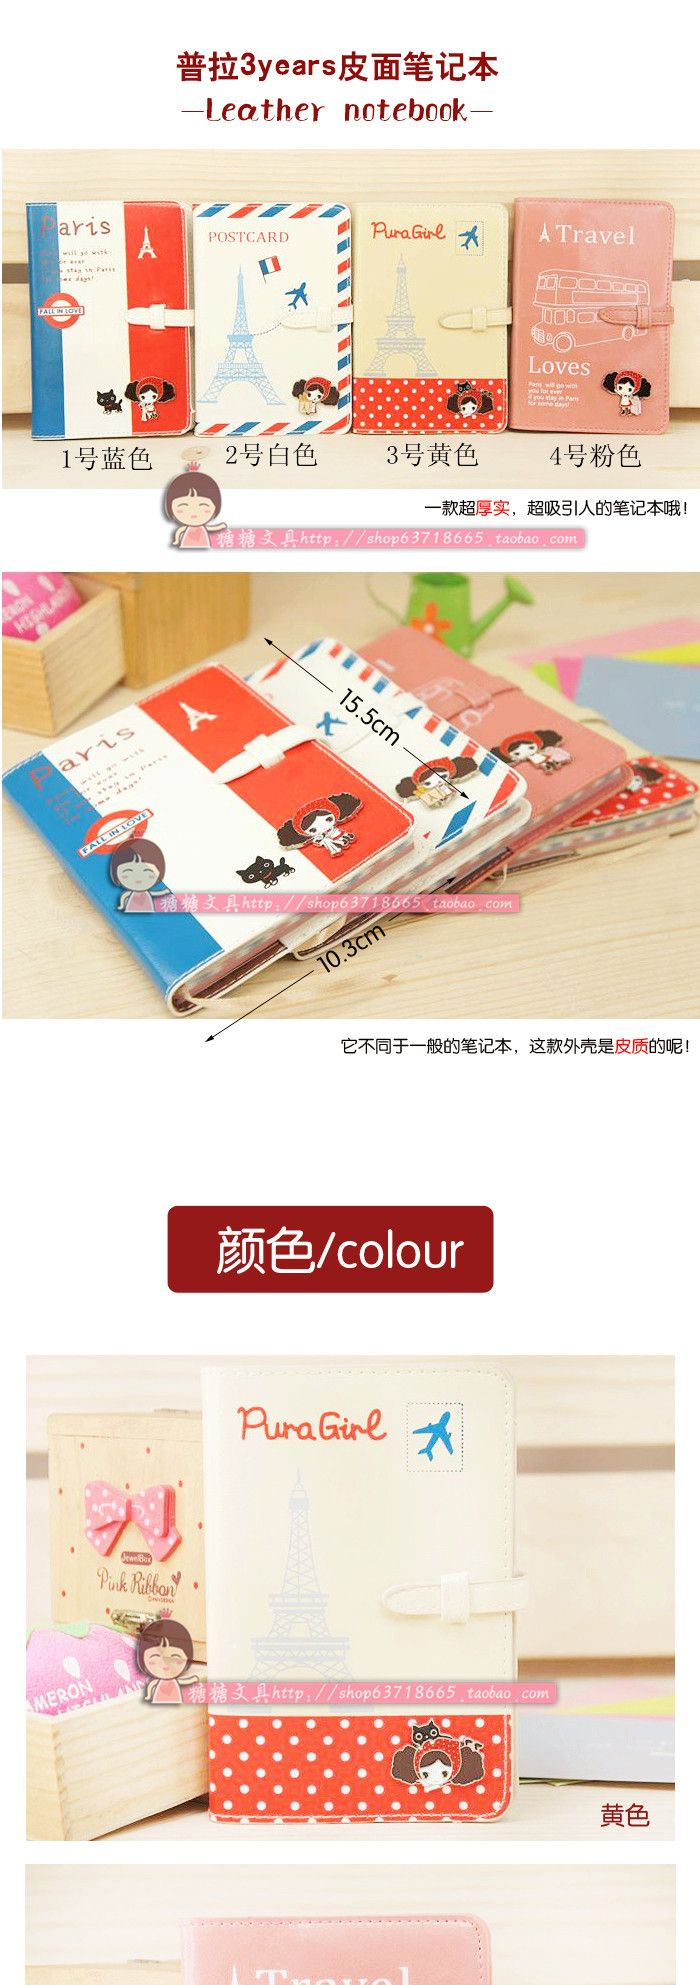 Aliexpress.com : Acquista spedizione gratuita prayuth ragazza in pelle pagina a colori unifilar notebook torre eiffel notepad commerciale notebook in pelle da Fornitori calzature in pelle da donna affidabili su King Space.